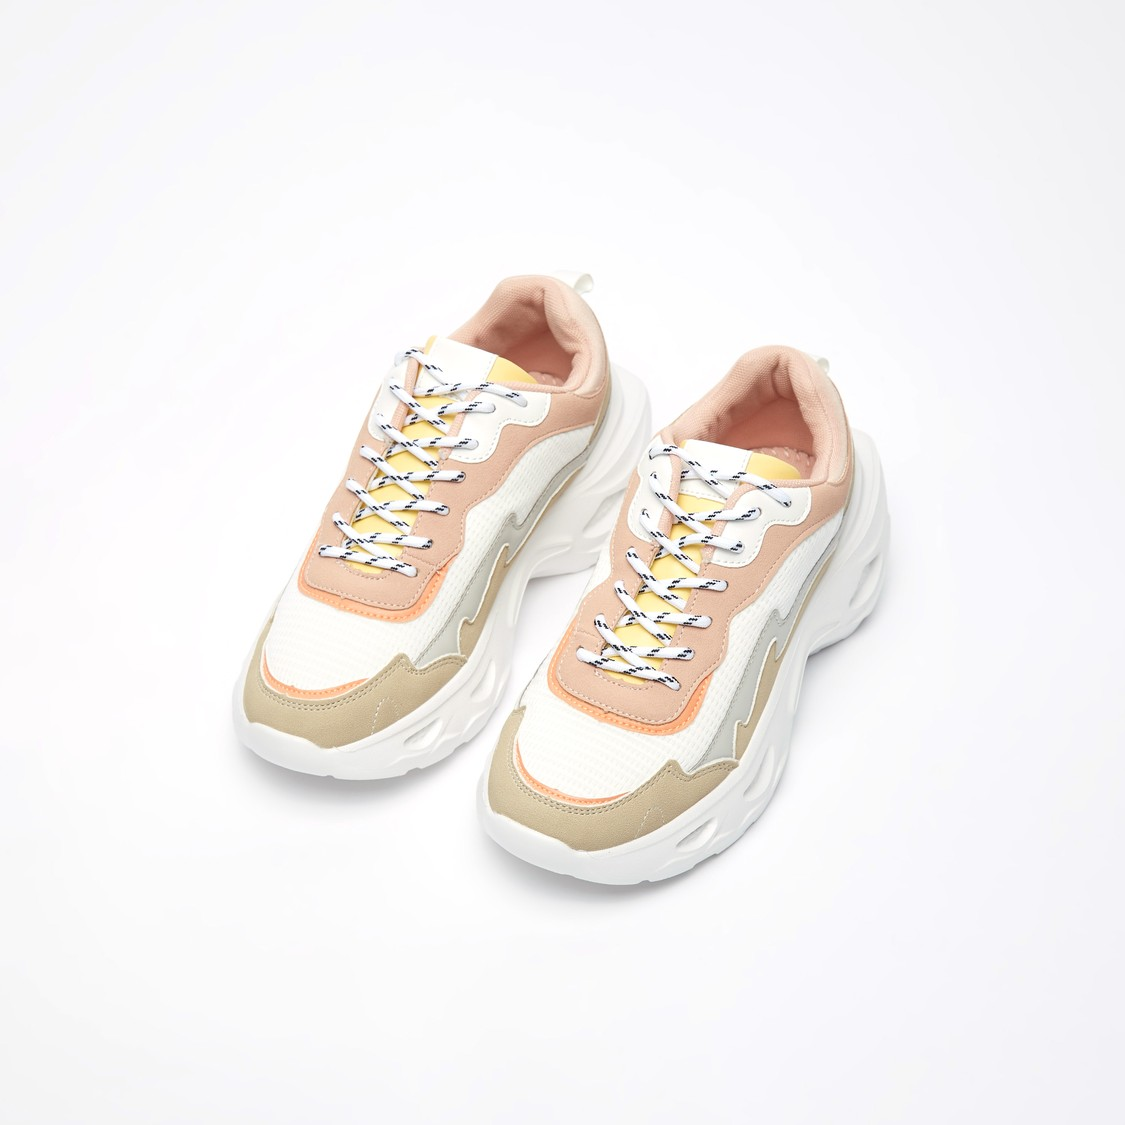 Chunky Textured Lace-Up Sneakers